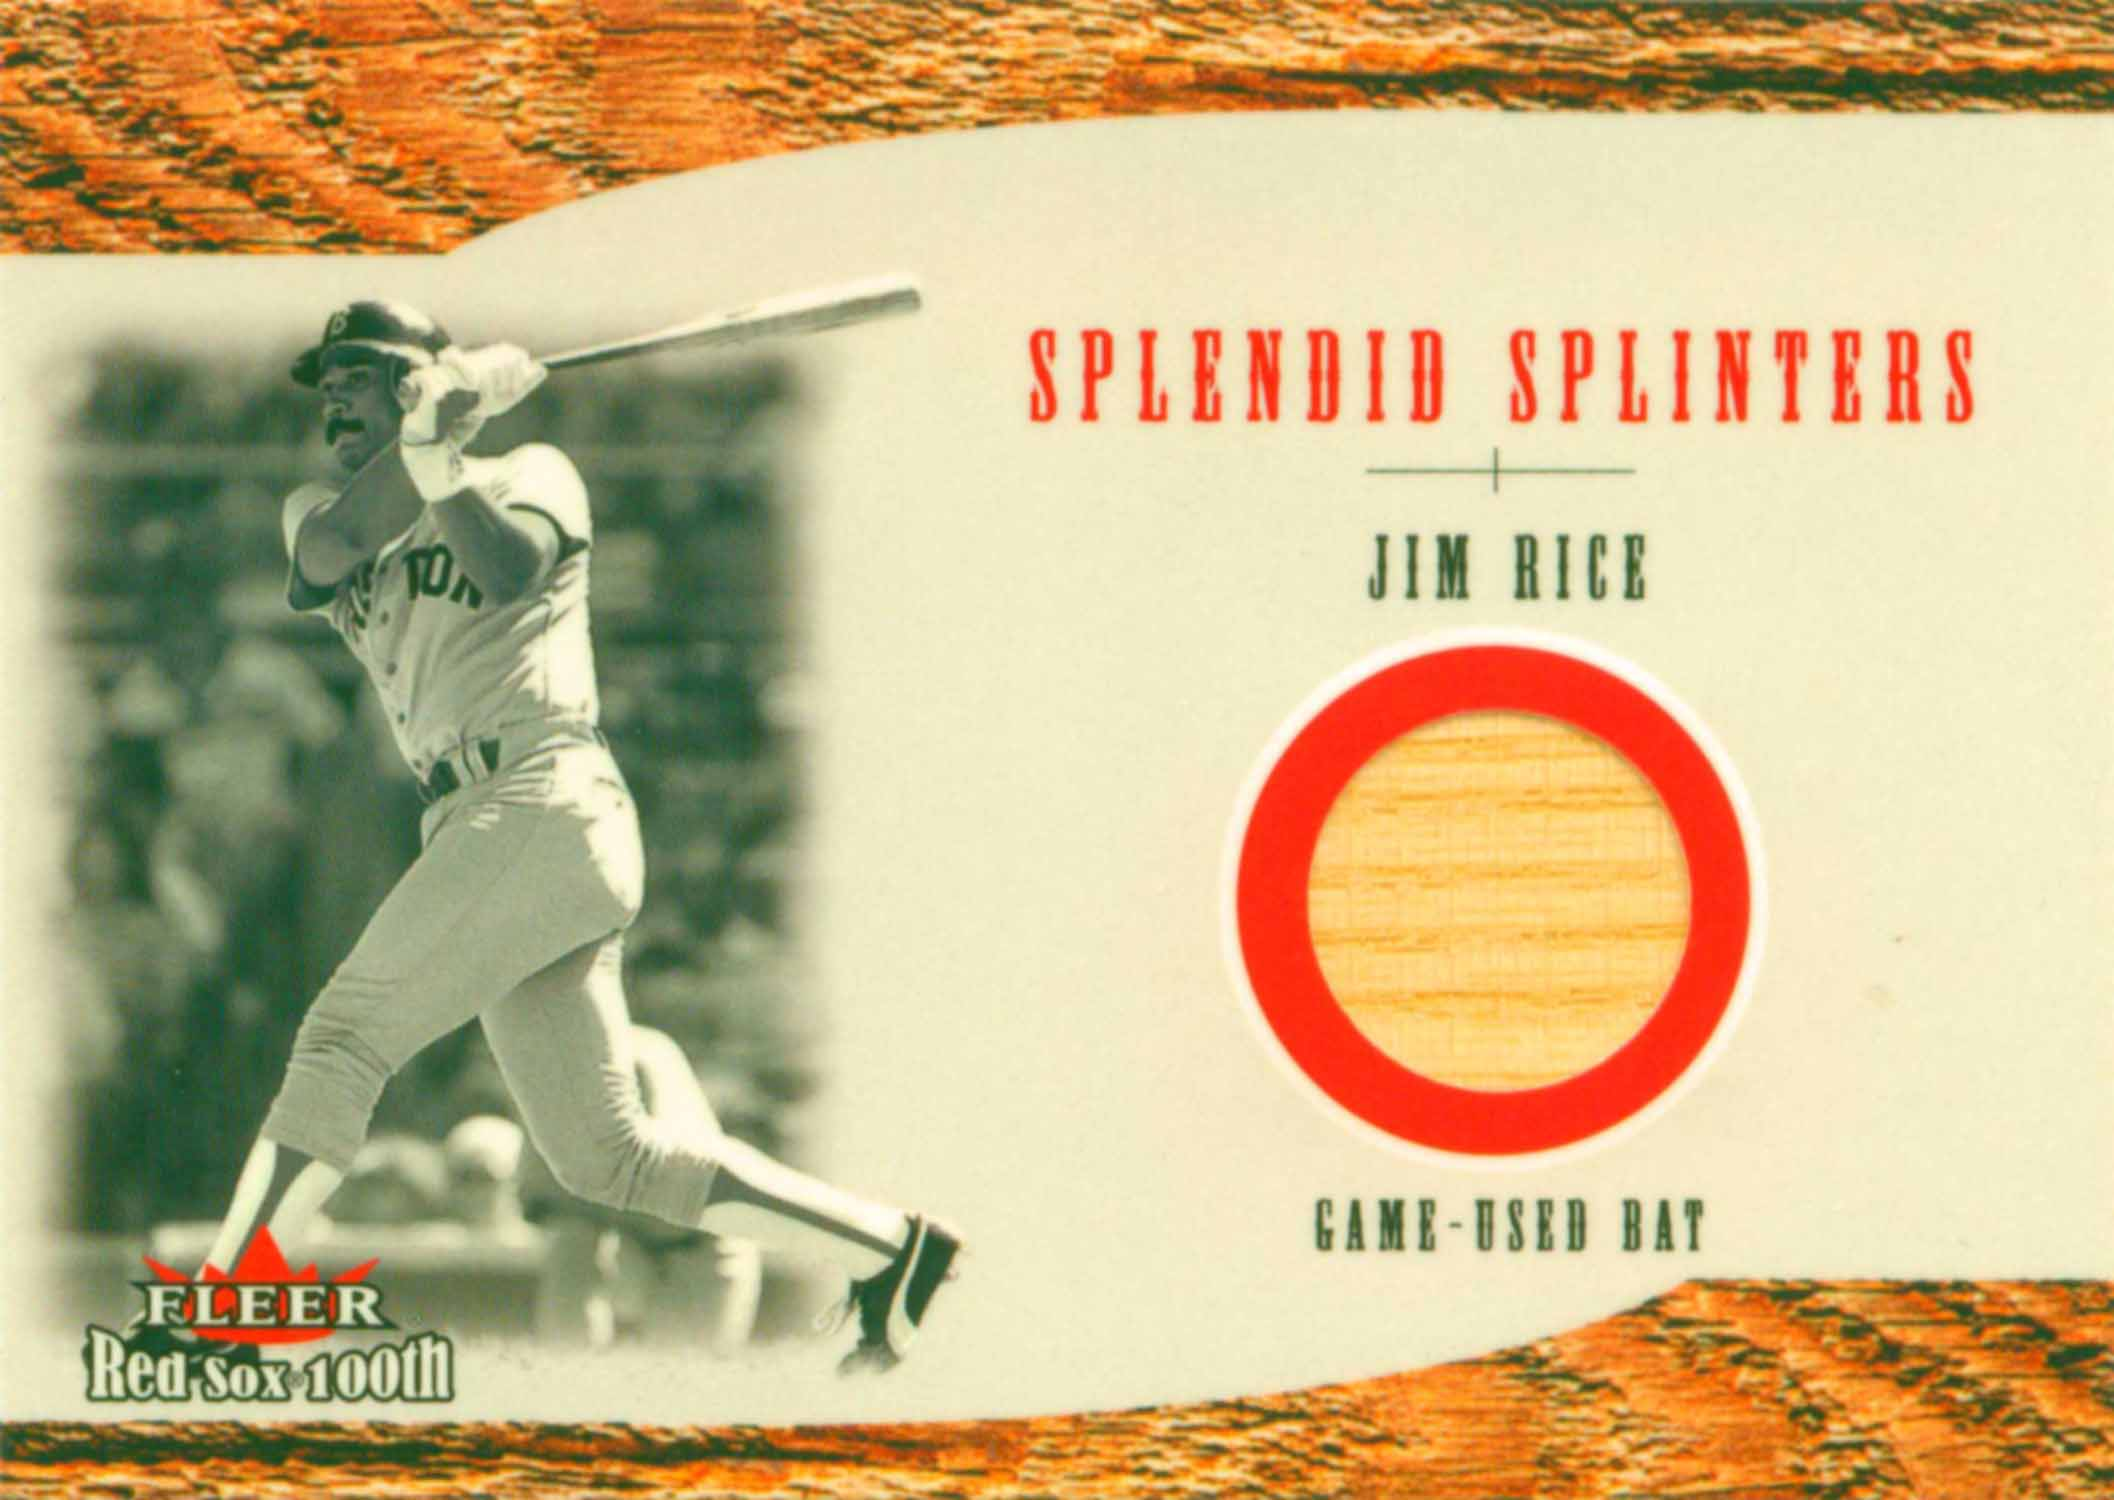 2001 Fleer Red Sox 100th Splendid Splinters Game Bat